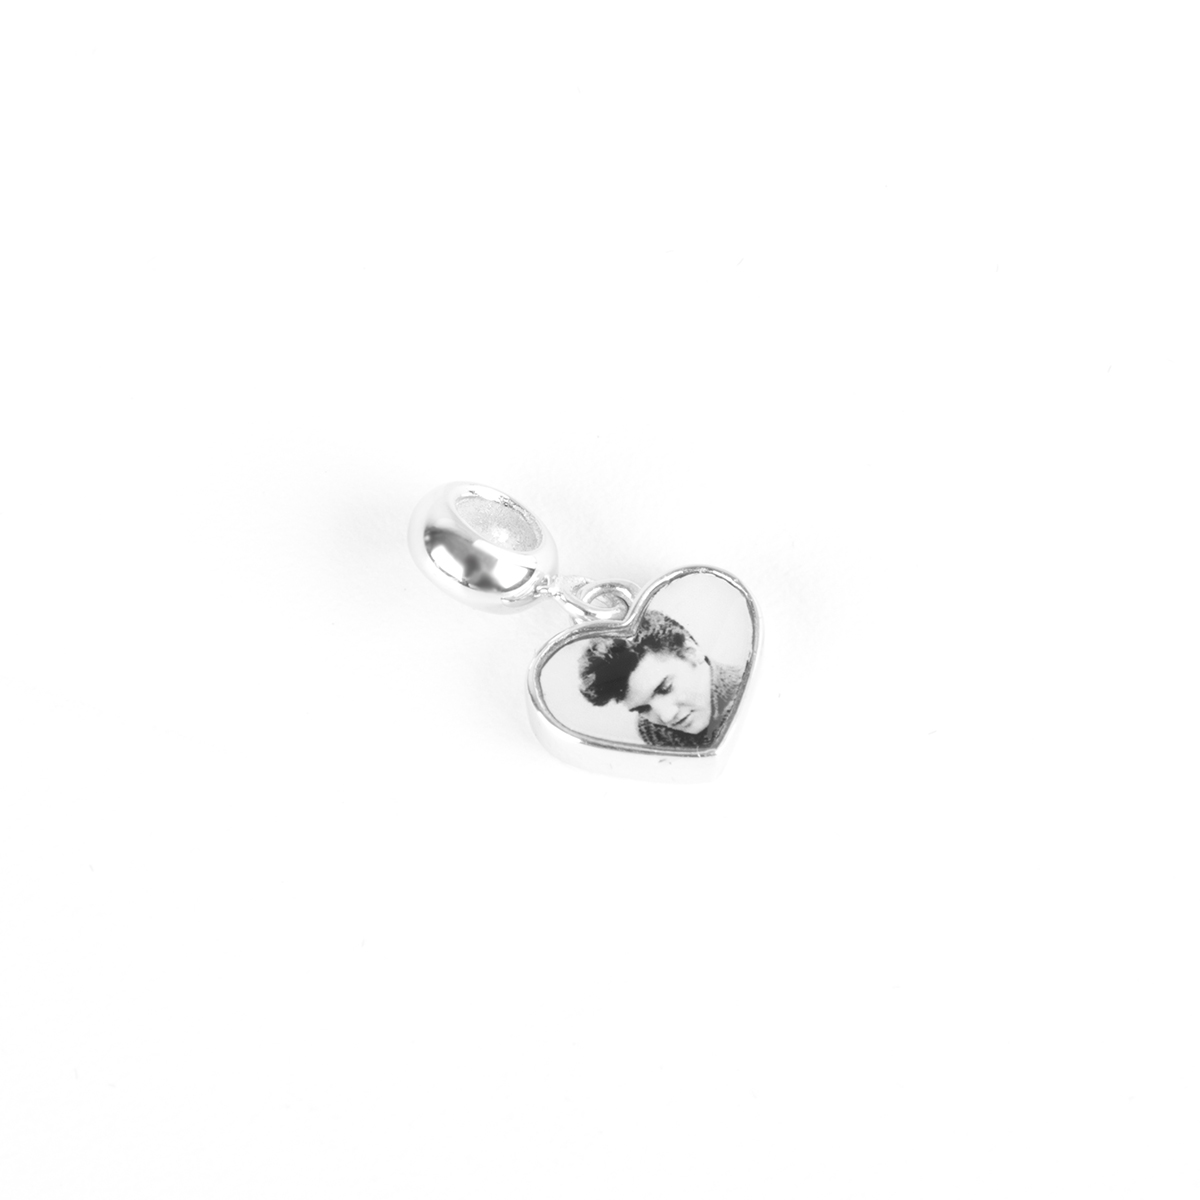 Elvis Silver Charm - Heartthrob Heart Dangle Bead